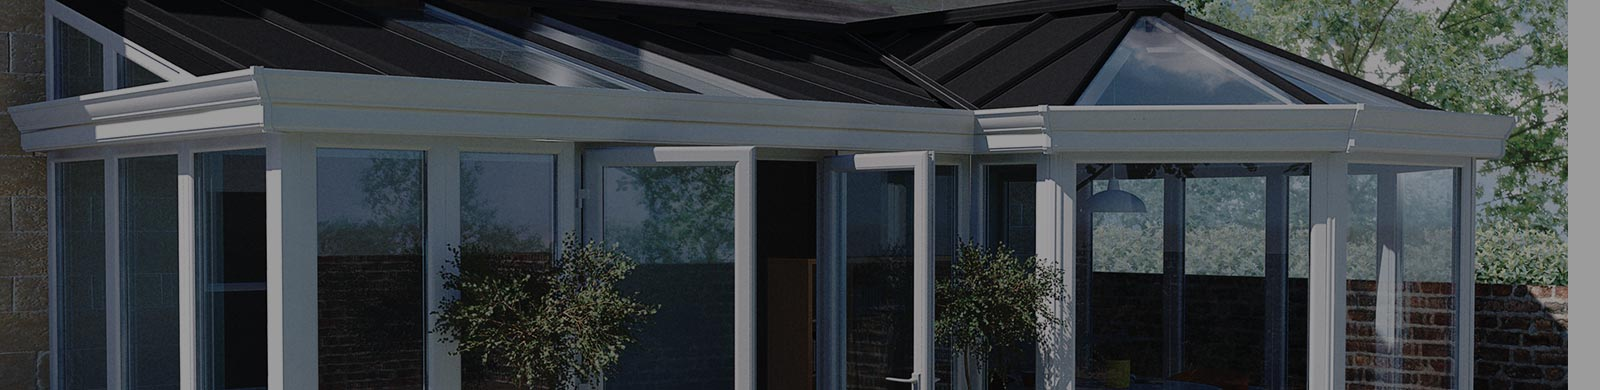 Conservatory Roofs Croydon Bromley Conservatory Roof Prices